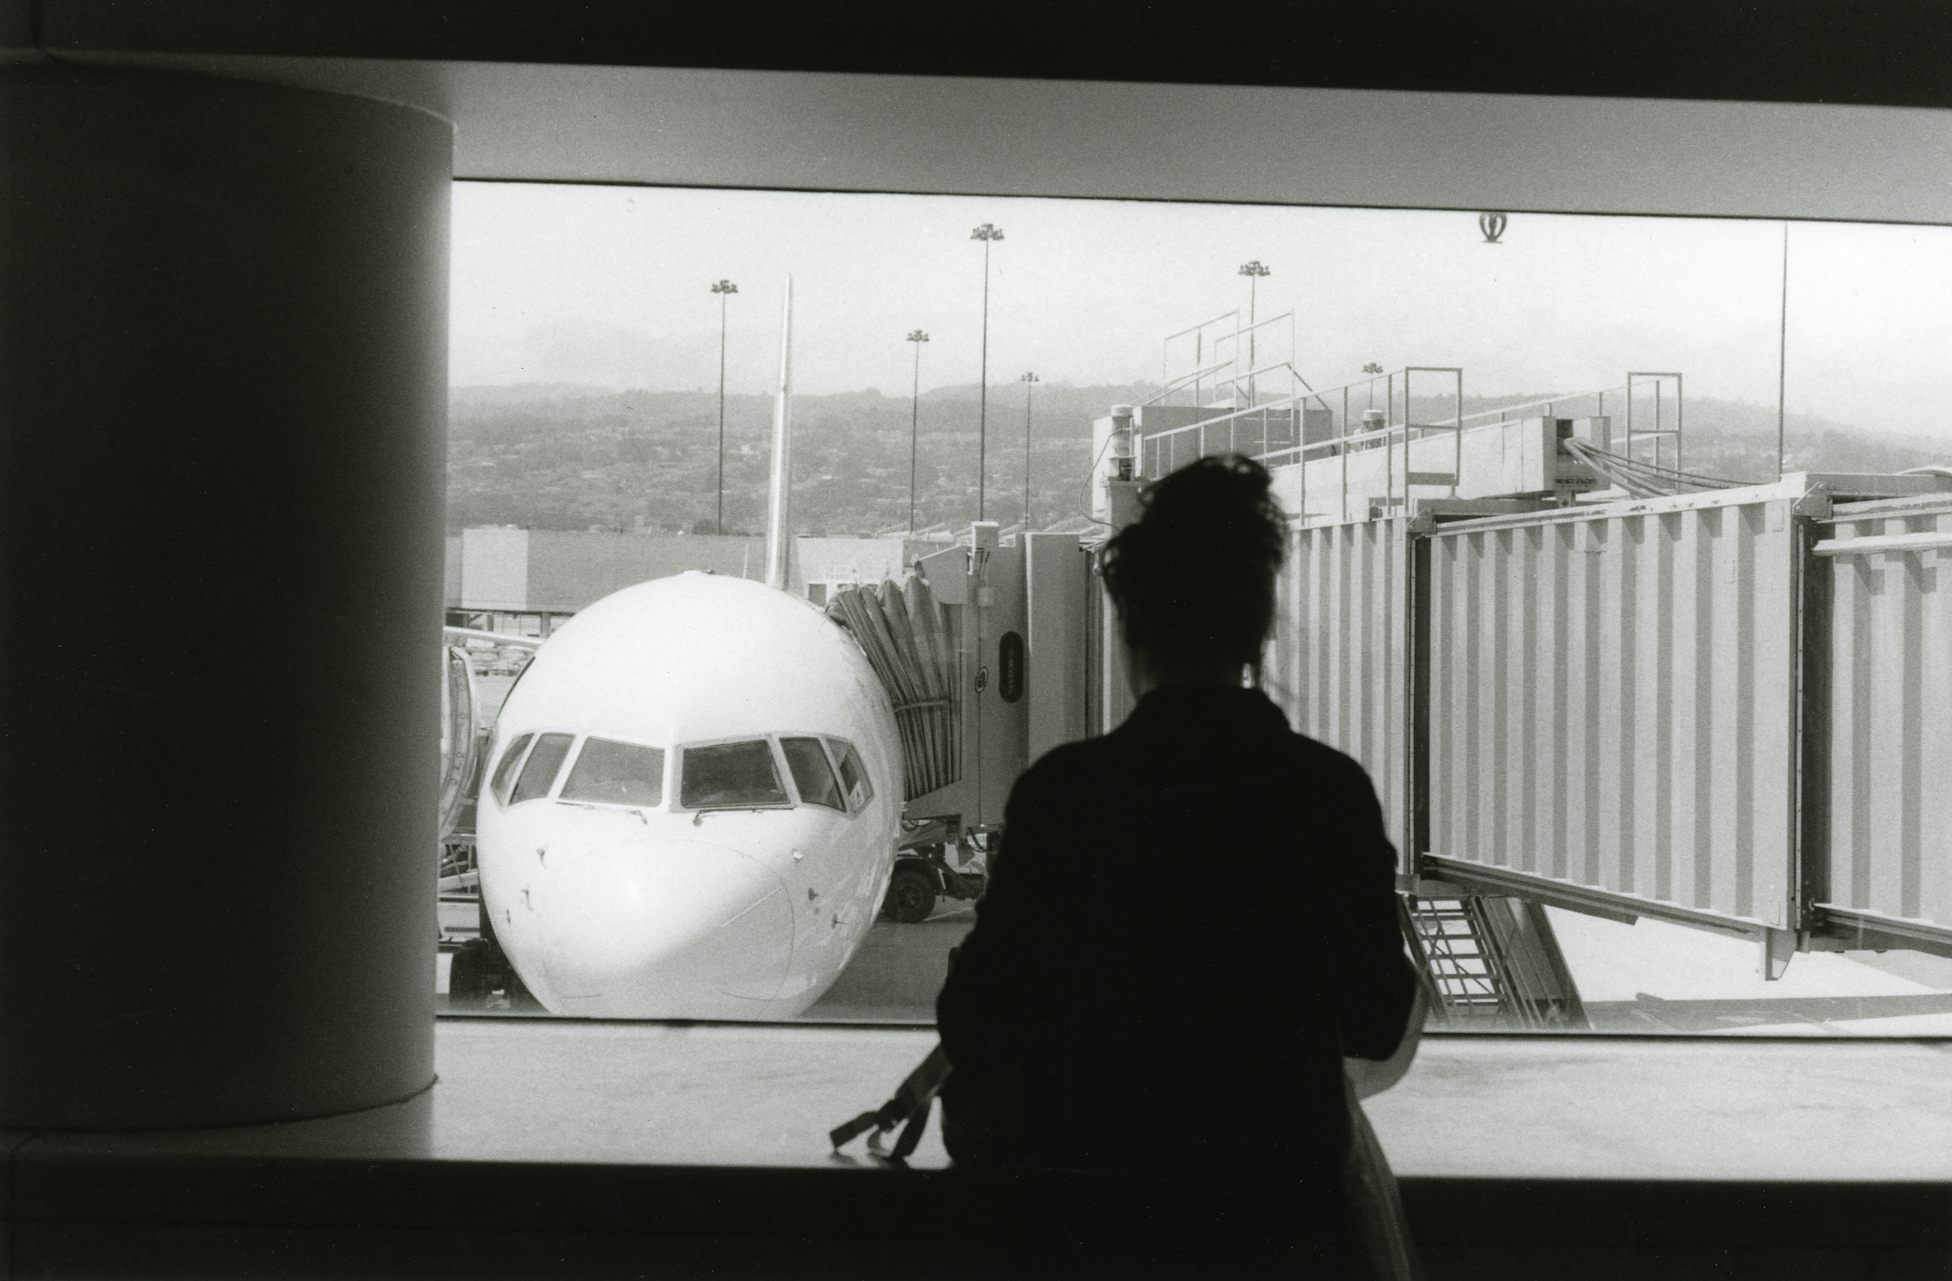 Waiting To Board